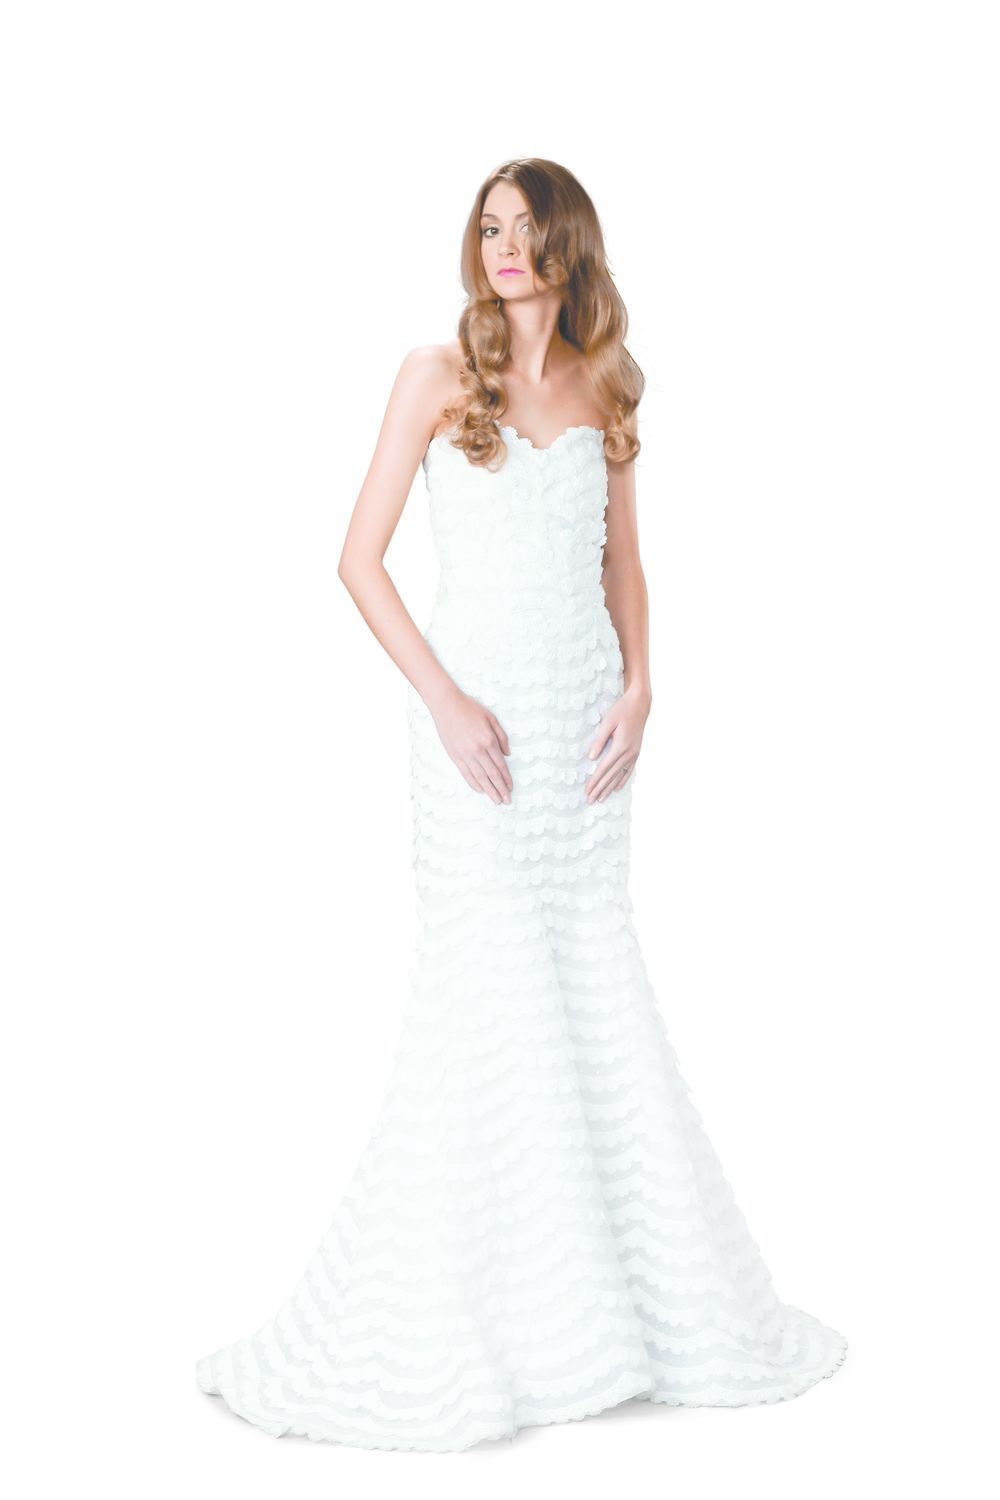 Where can i rent a wedding dress   Can You Rent Wedding Dresses  Dresses for Guest at Wedding